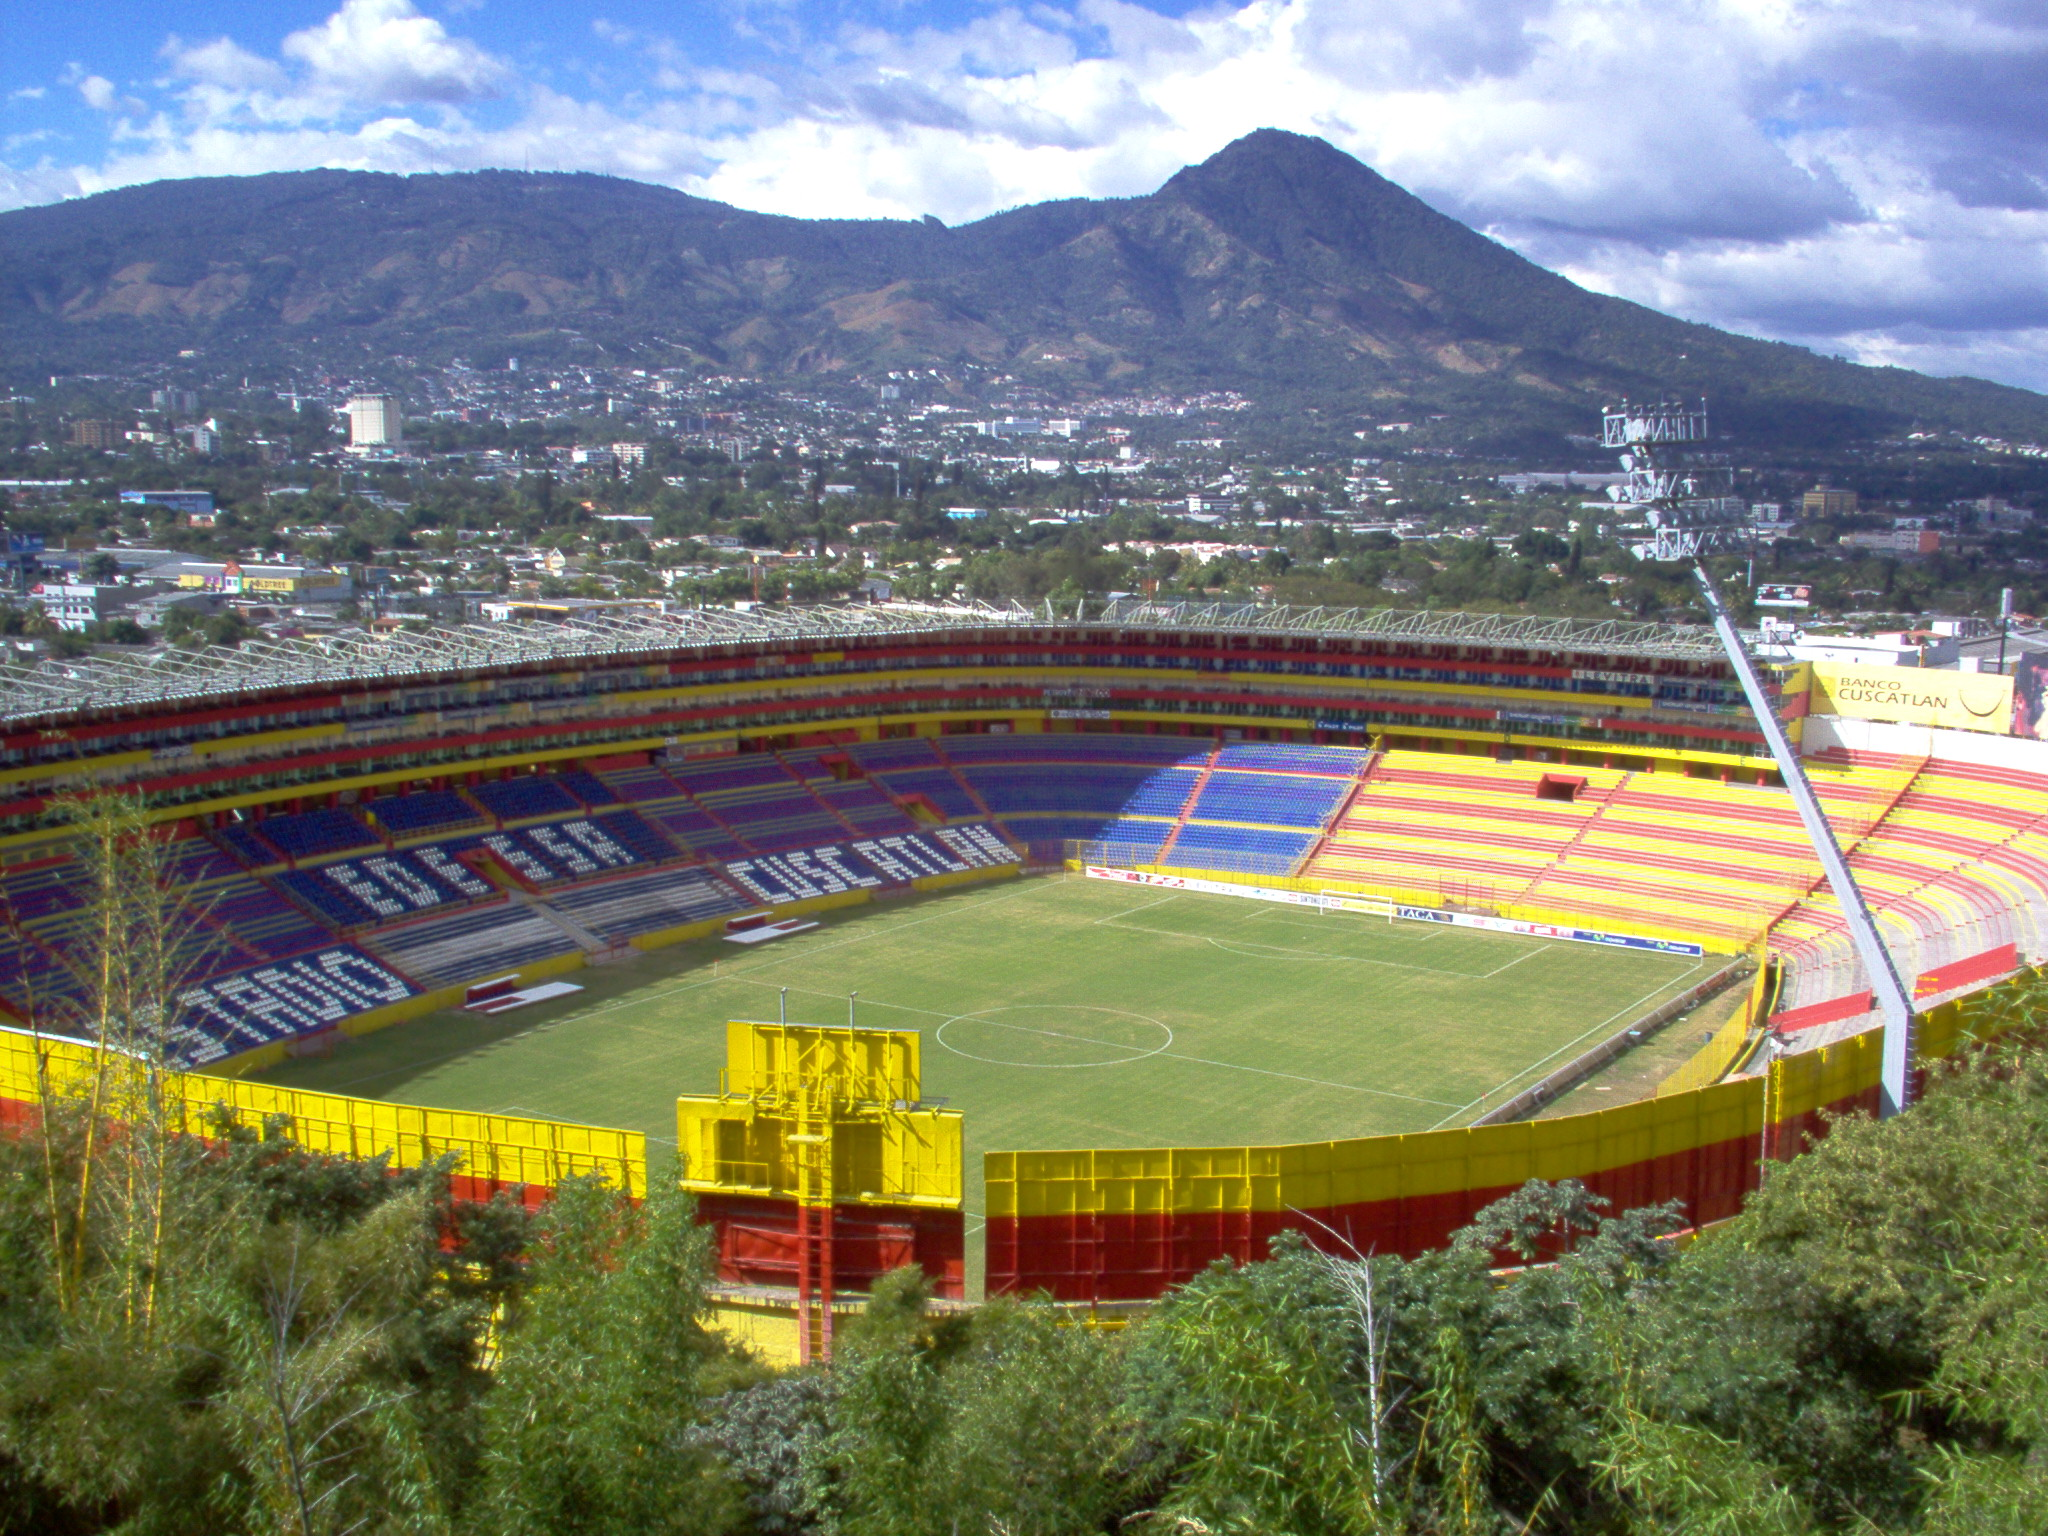 Estadio Cuscatlan is the biggest stadium in Central America